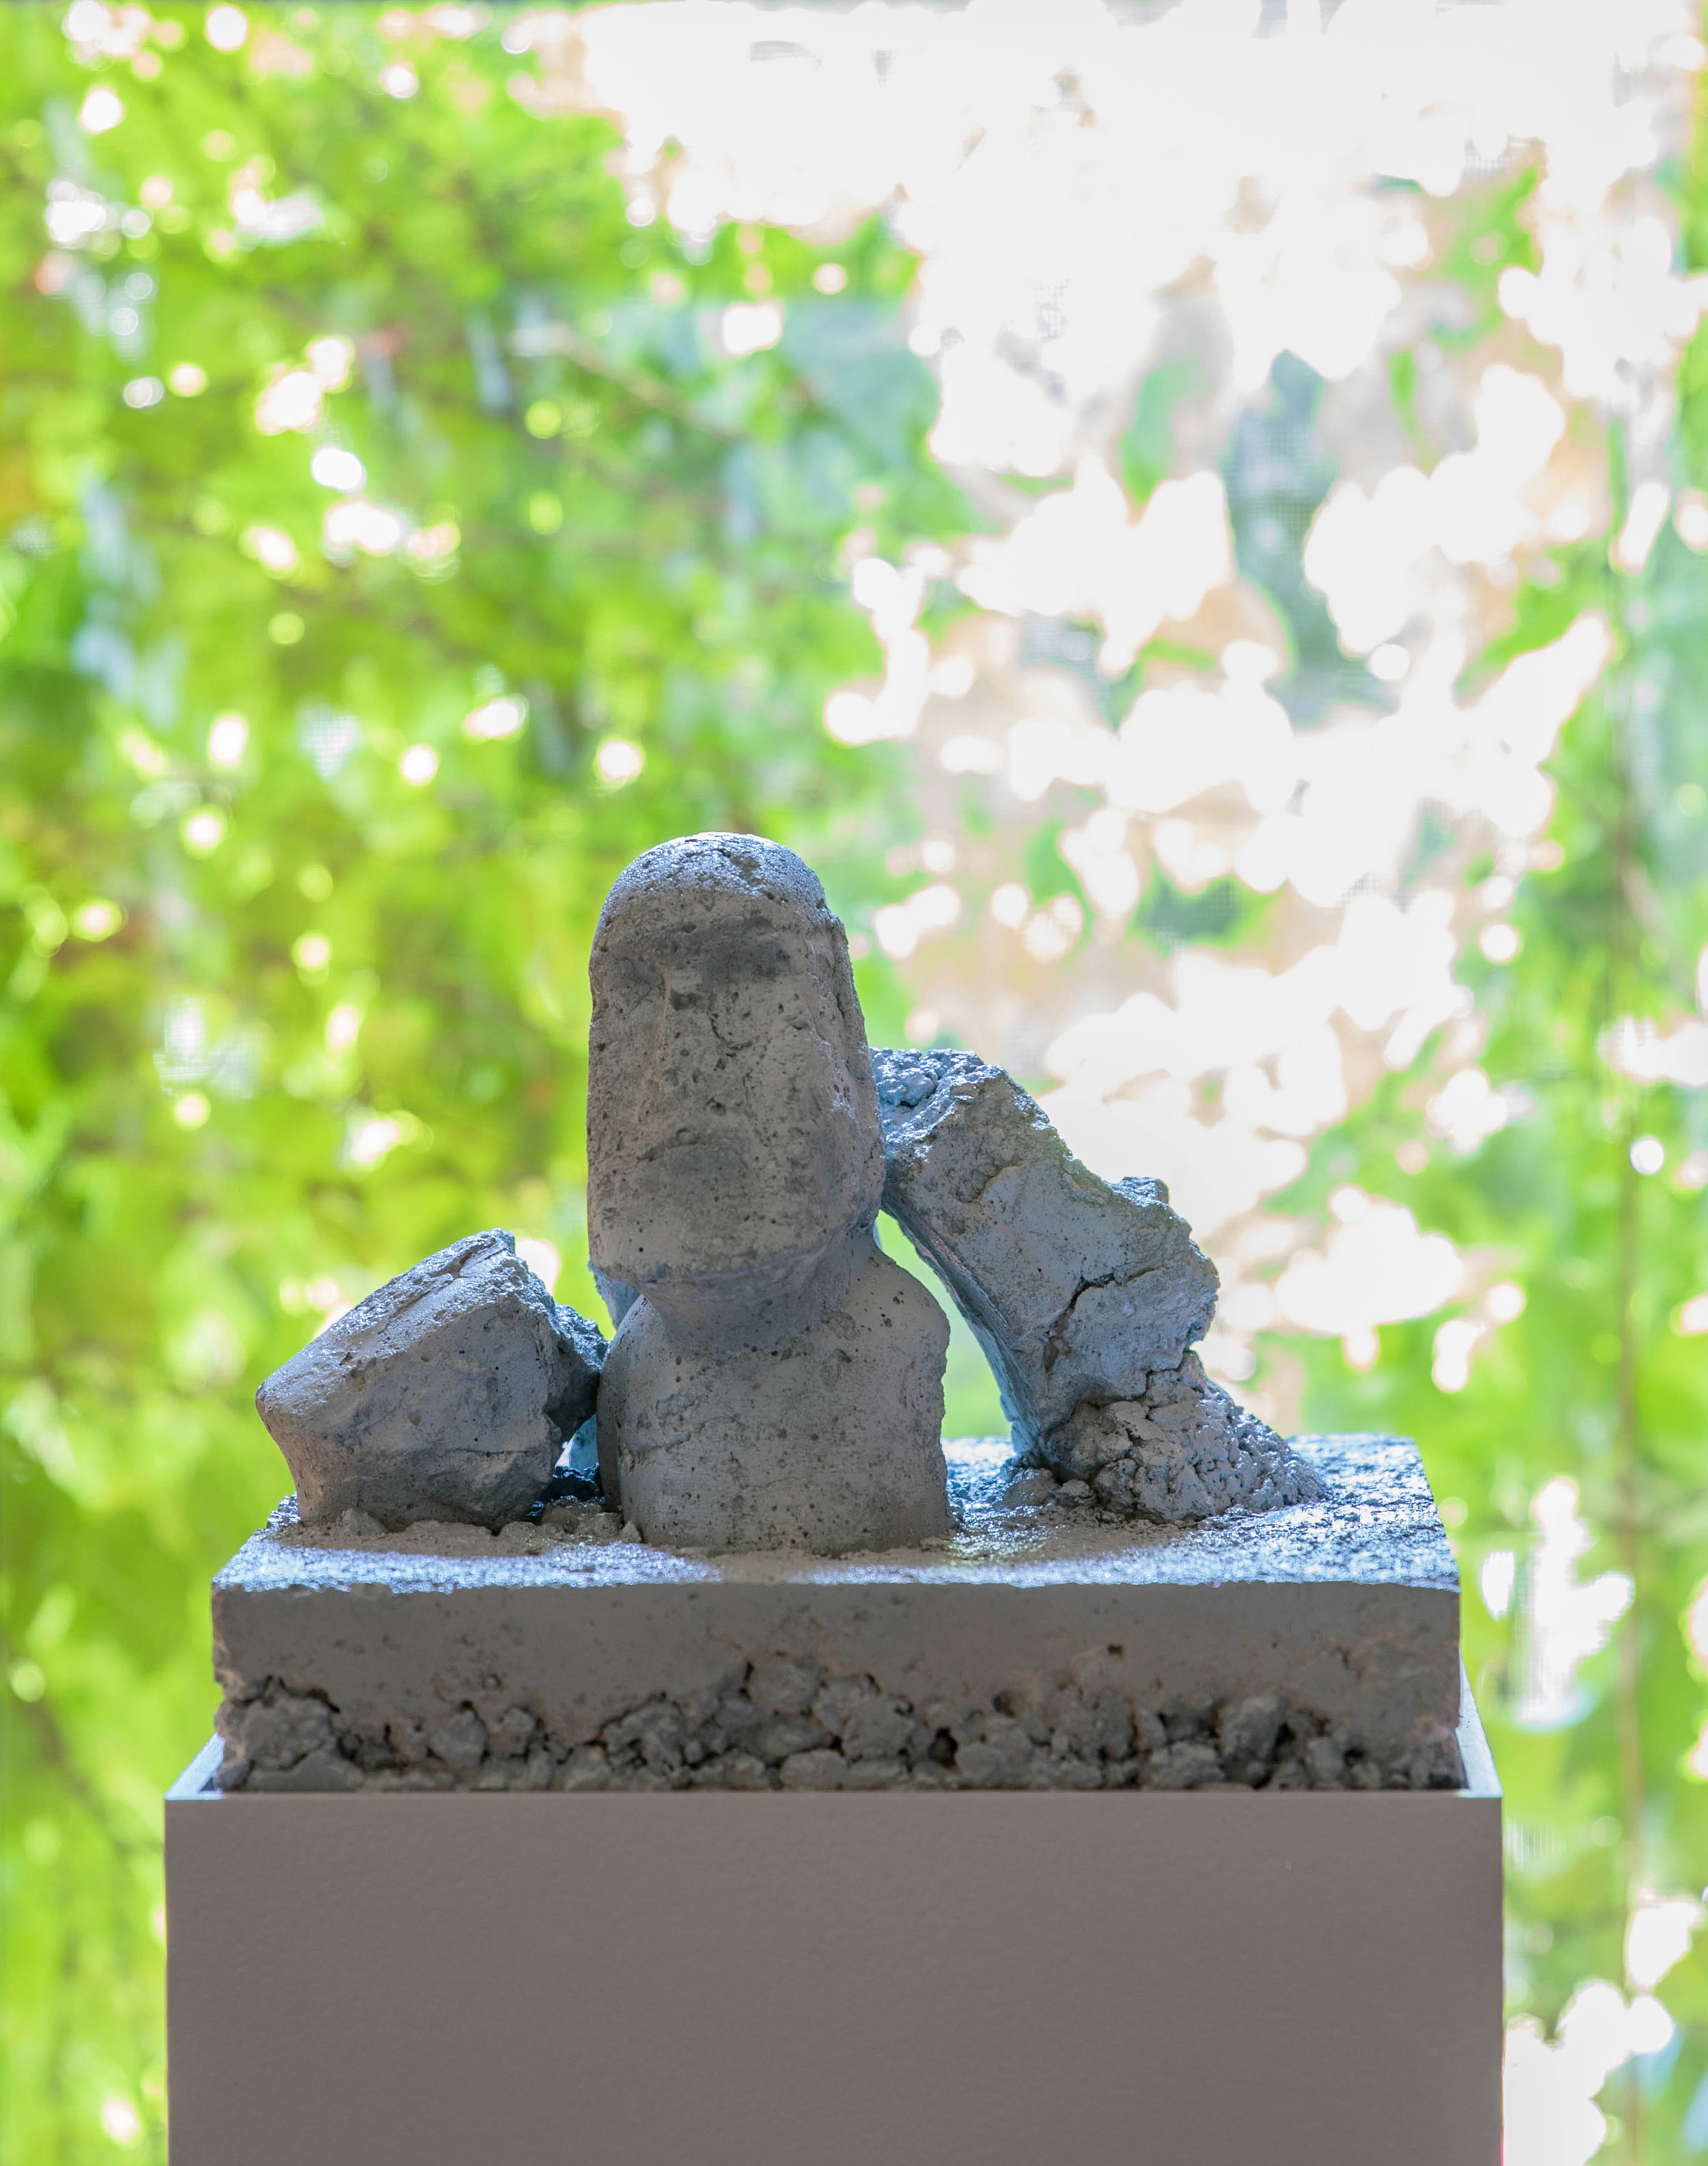 Siyuan Tan,  The Statues of Moai Were Destroyed in the Wild , 2018. Concrete, wood, 12 x 12 x 11 inch; Base: 35 x 12 x 12 inch ©Siyuan Tan, courtesy Fou Gallery